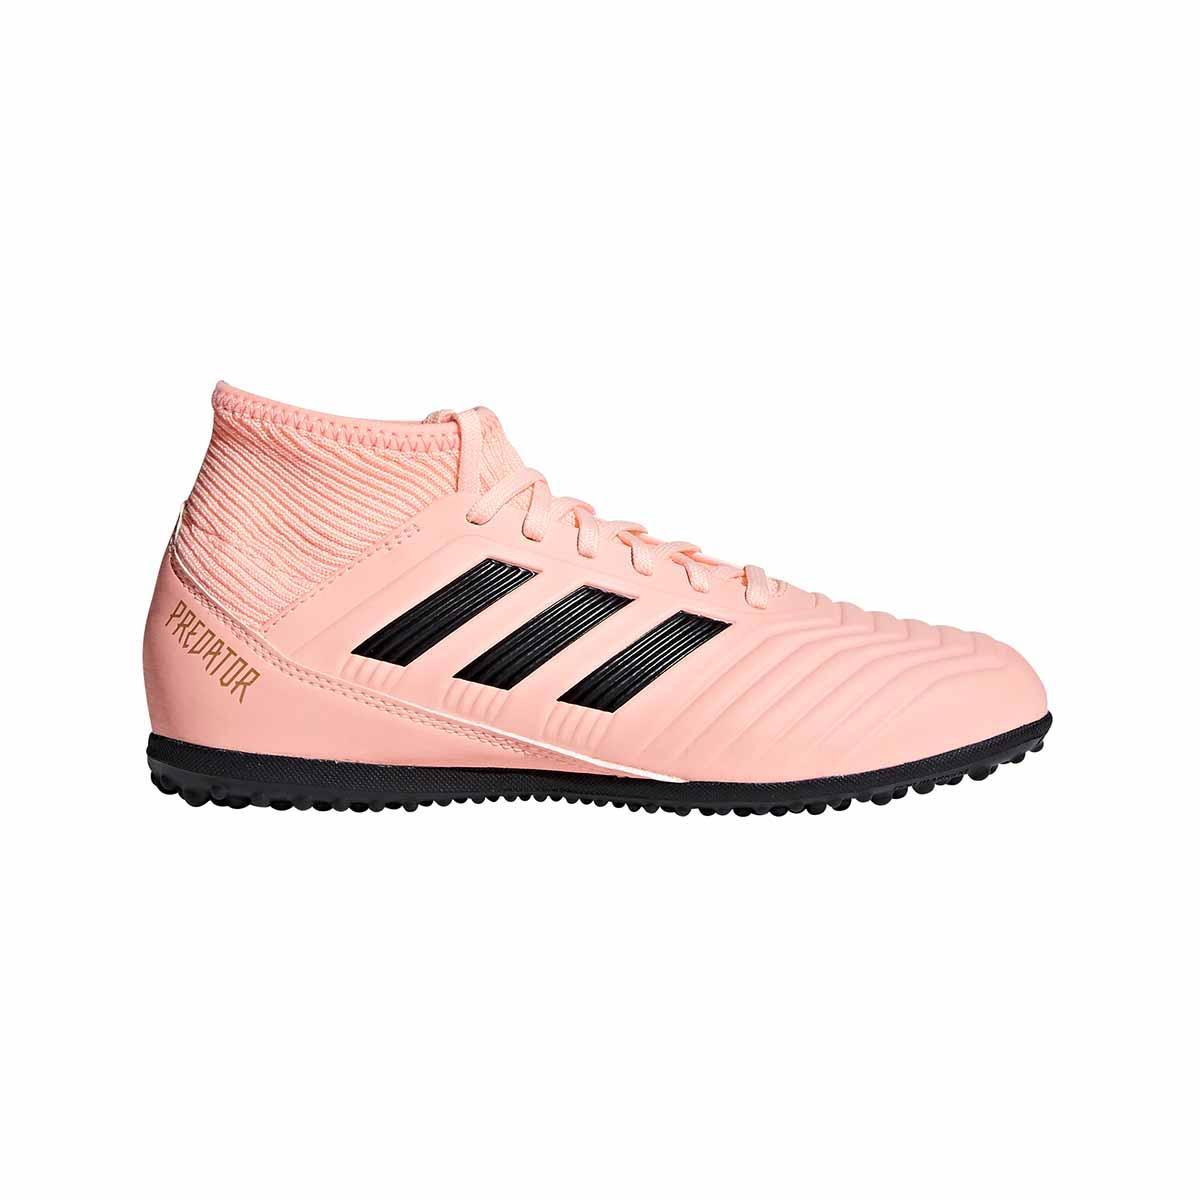 new concept bb4a6 91214 adidas Predator Tango 18.3 TF J - Clear Orange/Black/Trace Pink